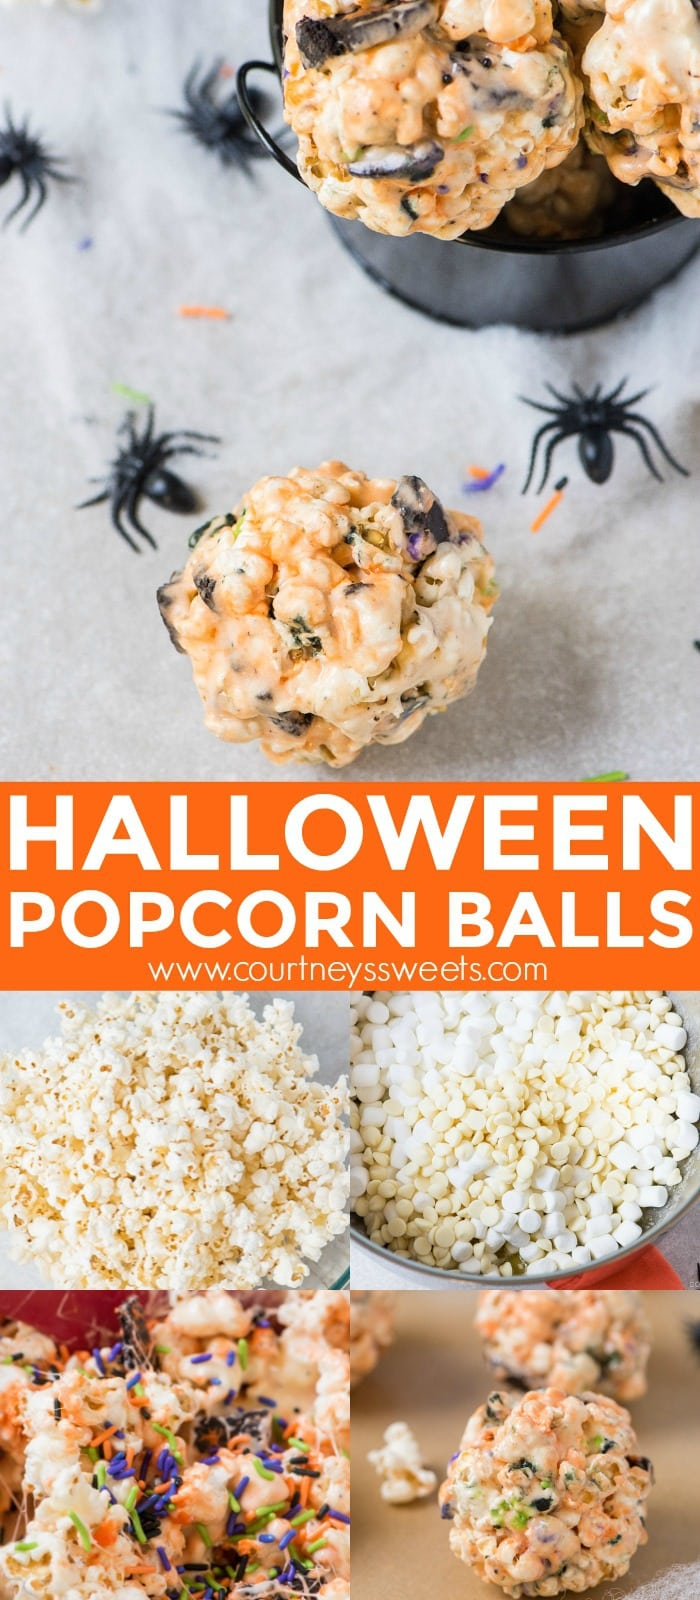 Make our Halloween Popcorn Balls for a fun Halloween treat! Marshmallow popcorn balls with Oreo cookies, white chocolate, and Halloween sprinkles!